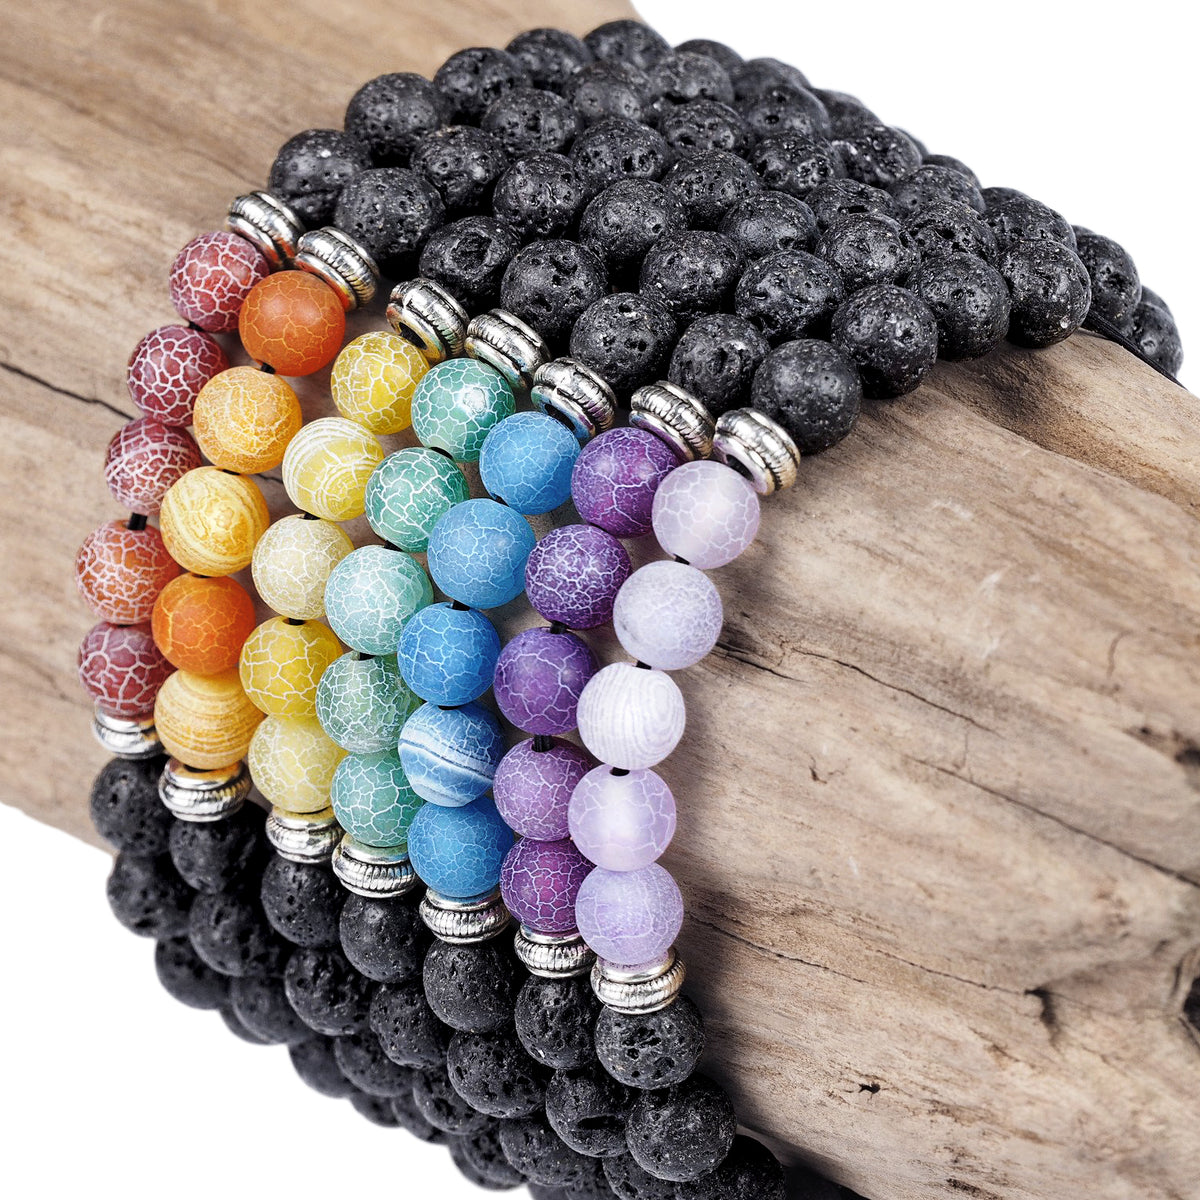 7 Chakra Bracelet Set with Lava and Agate Stones